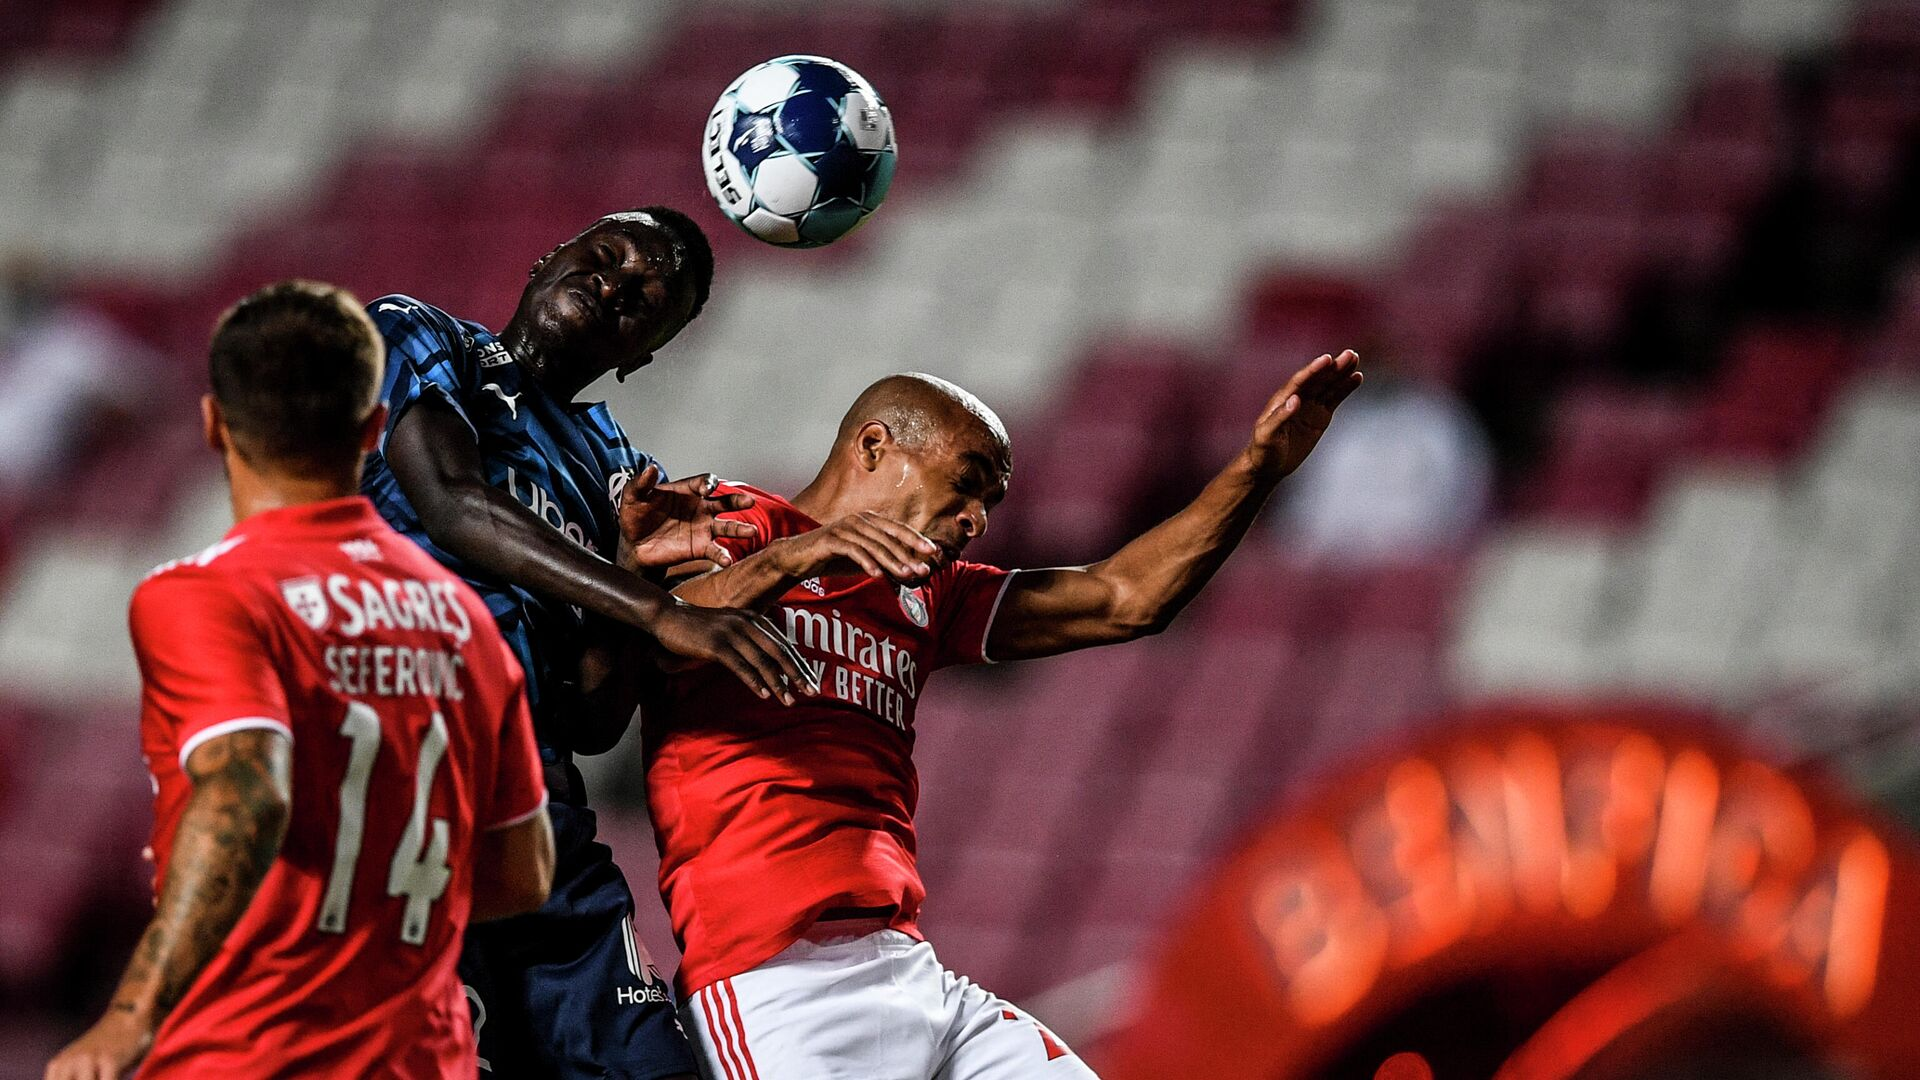 Benfica's Portuguese midfielder Joao Mario (R) heads the ball with Marseille's French midfielder Pape Gueye during an international club friendly football match between SL Benfica and Olympique de Marseille at the Luz stadium in Lisbon on July 25, 2021. (Photo by PATRICIA DE MELO MOREIRA / AFP) - РИА Новости, 1920, 25.07.2021